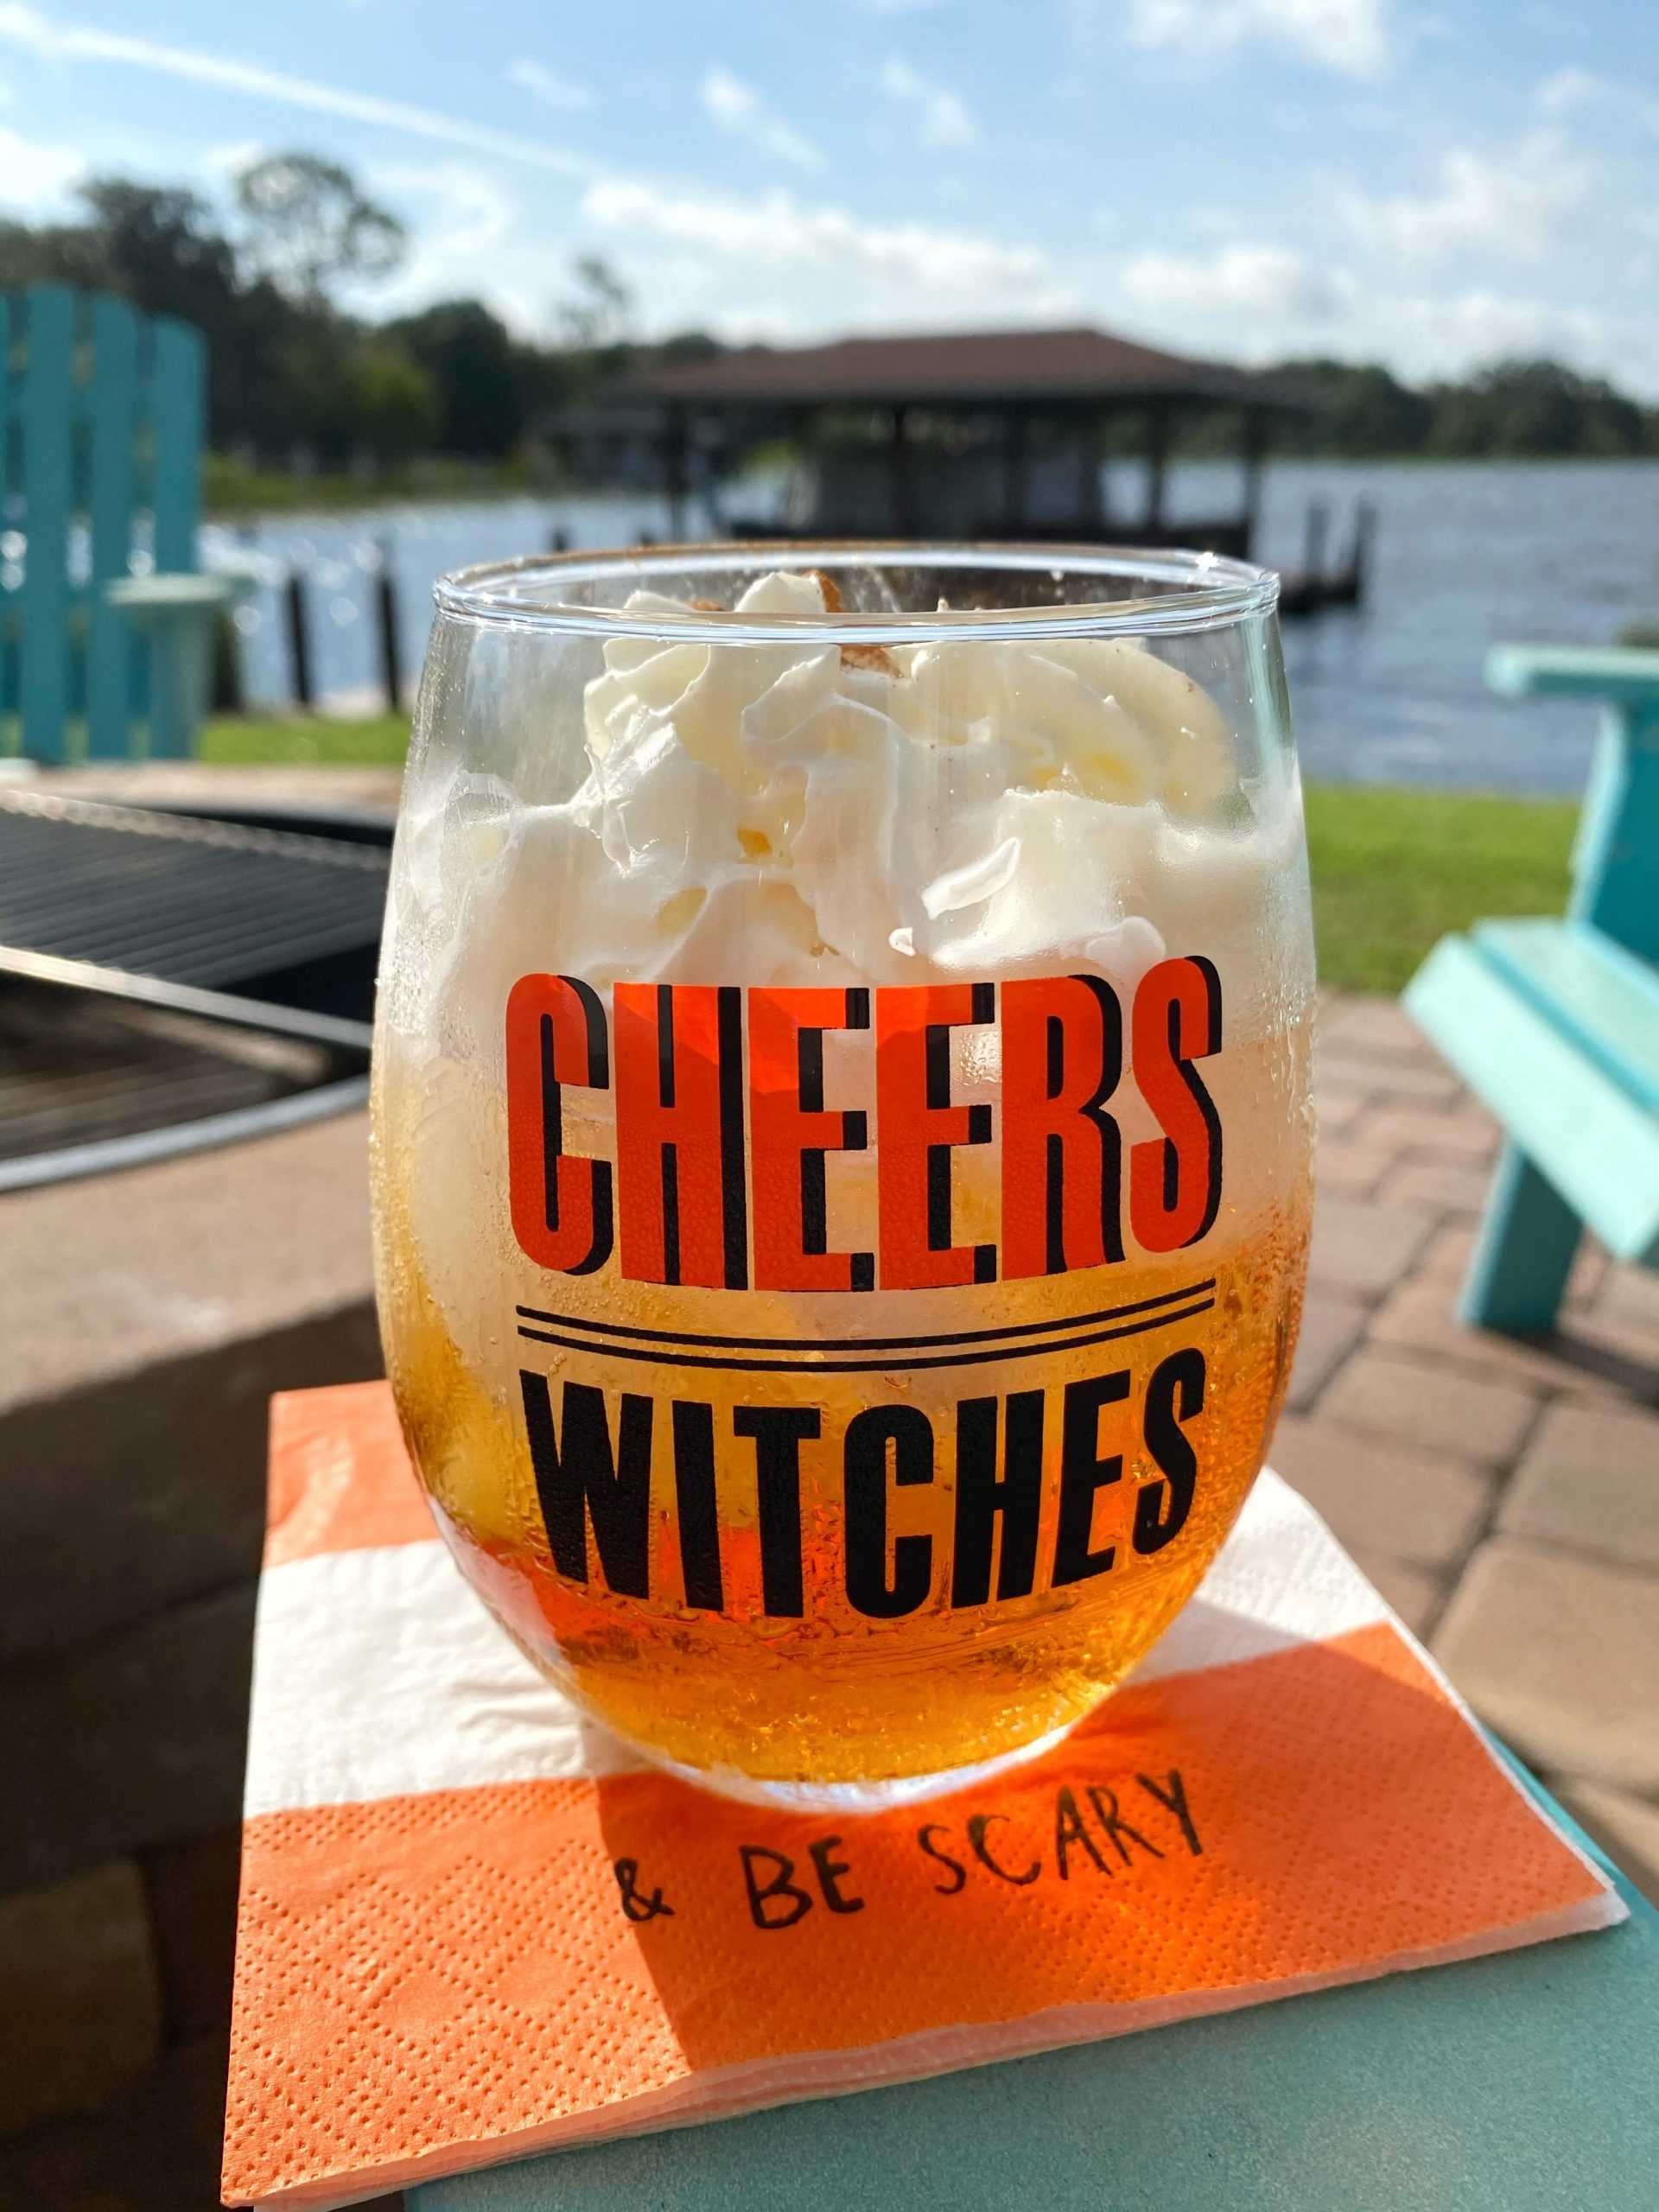 cheers witches glass with cocktail